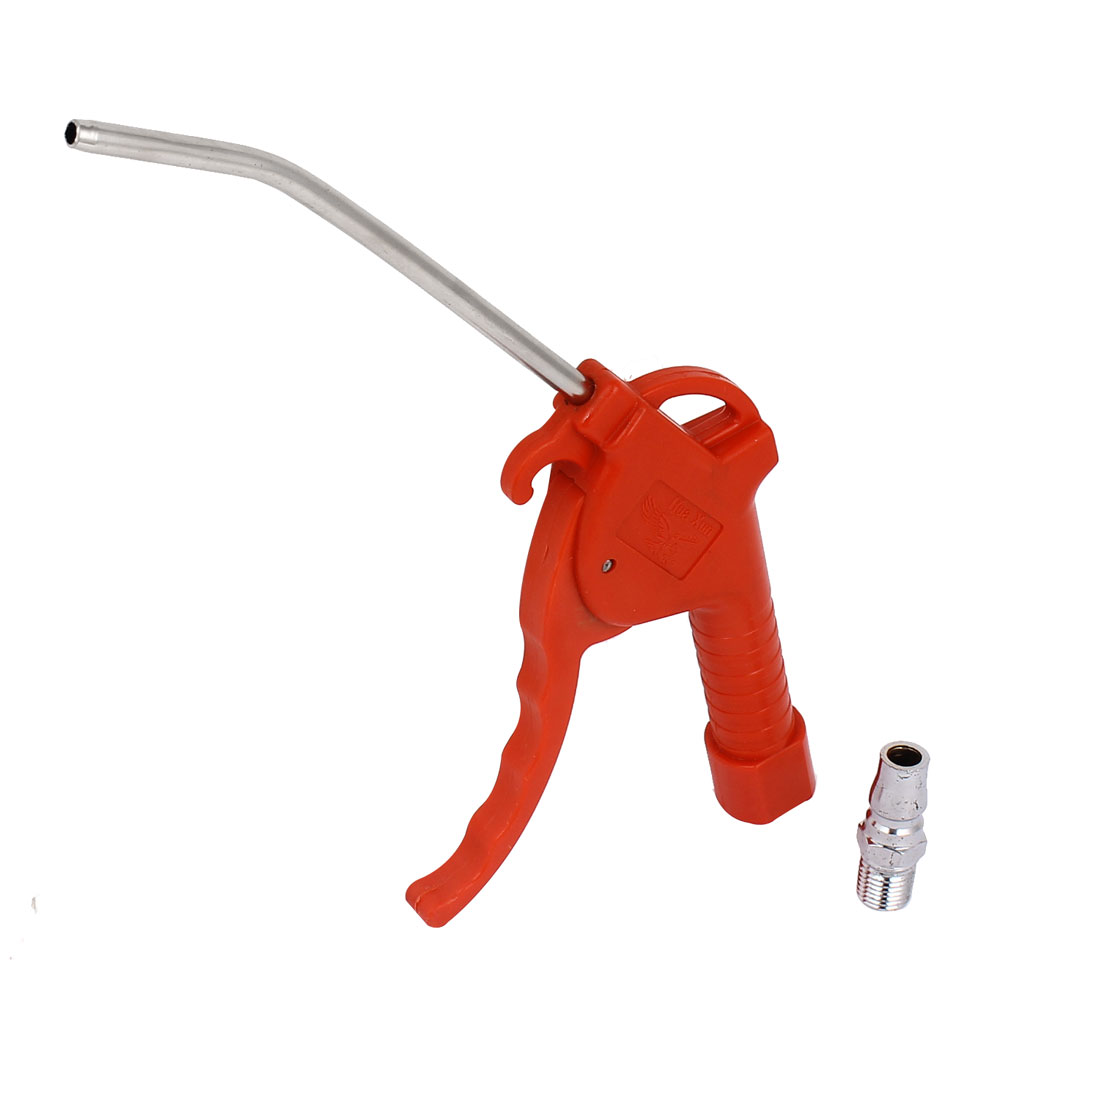 Blow Clean Dust Removing Air Duster Gun Cleanner Handy Tool for Machine